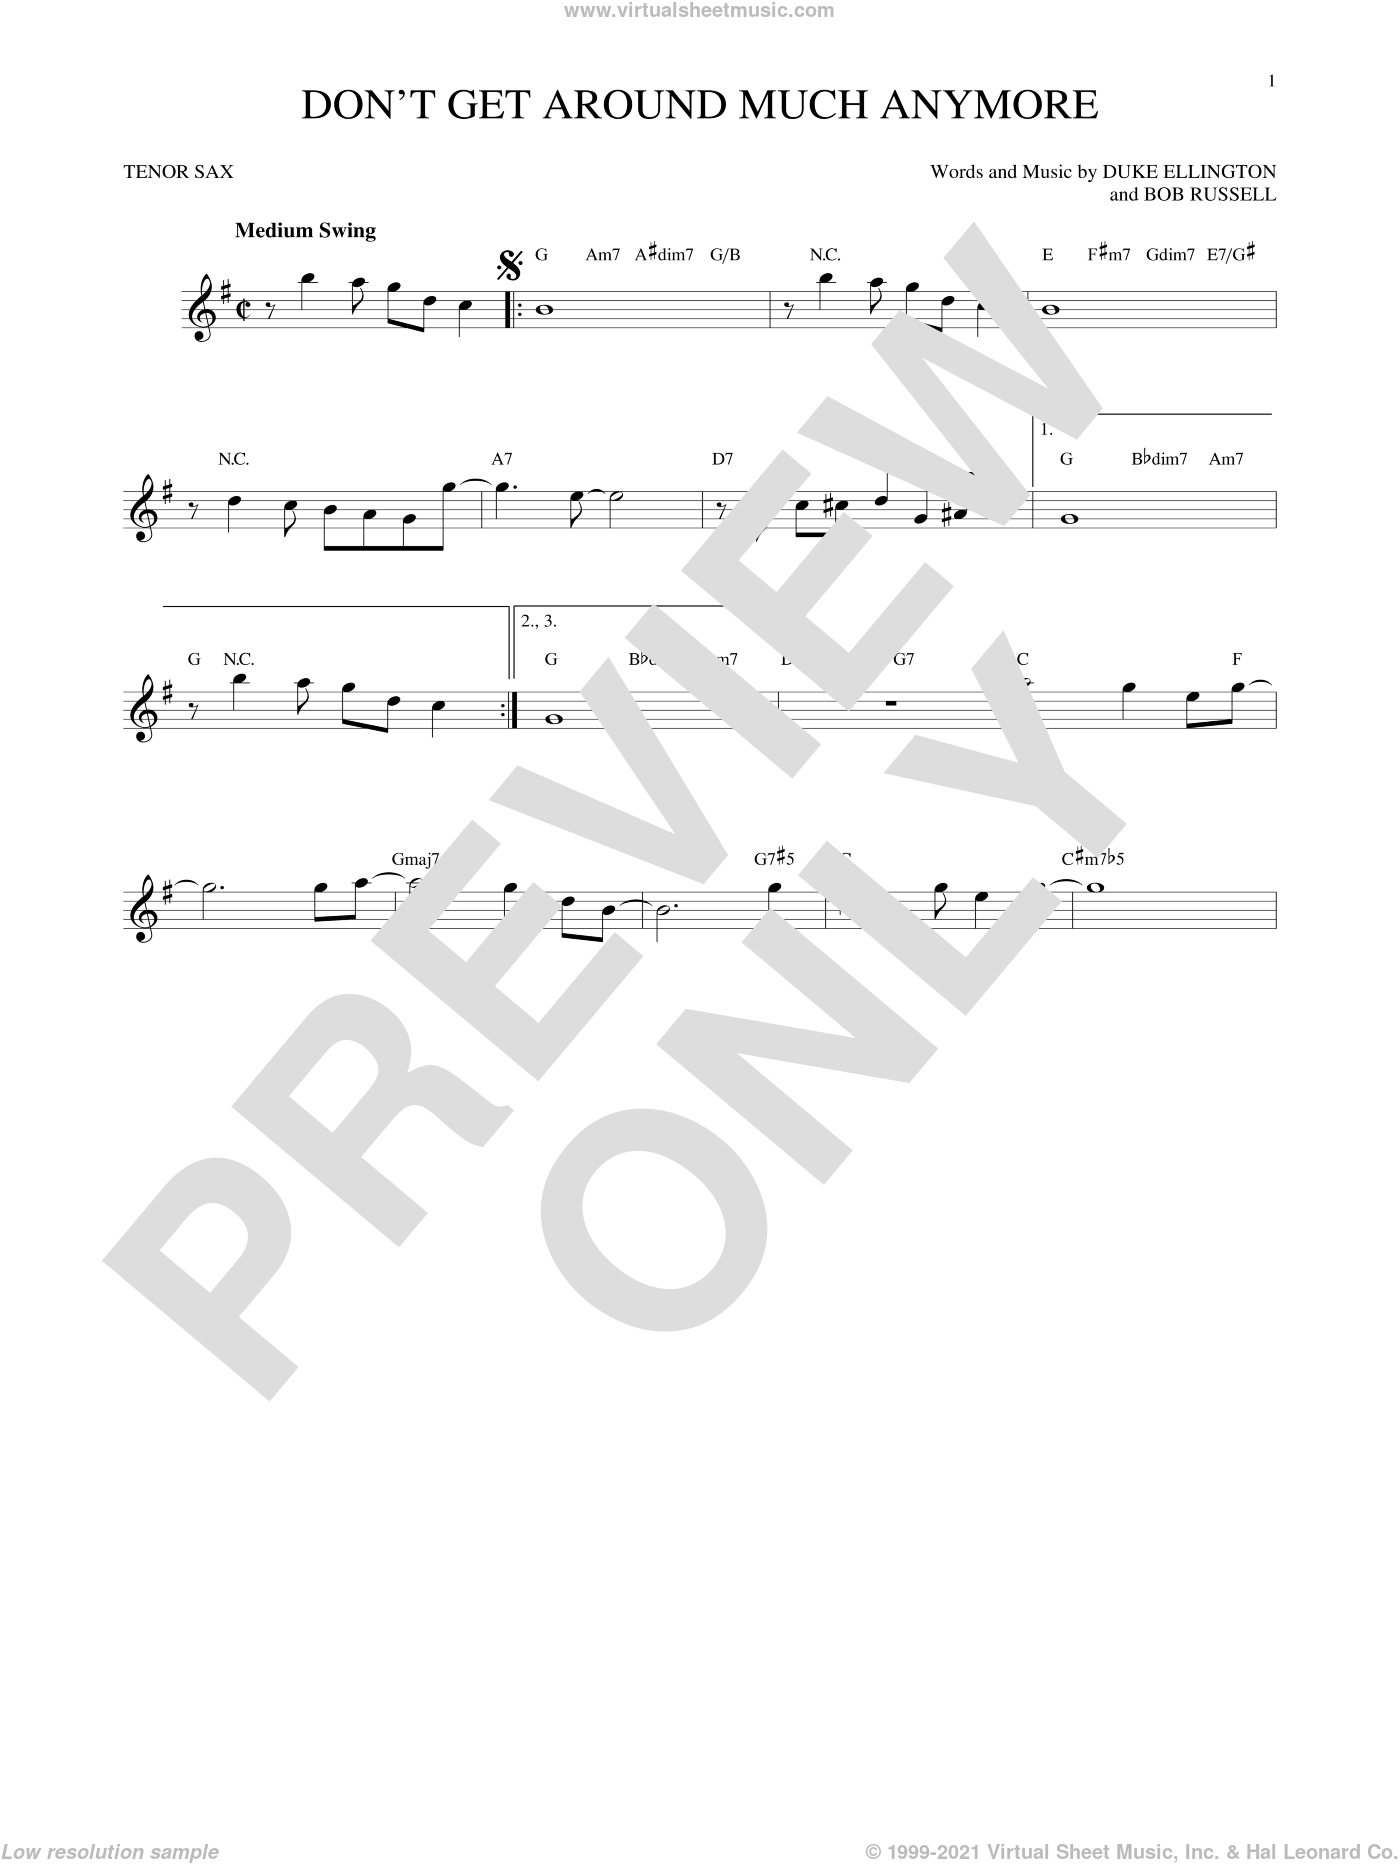 Don't Get Around Much Anymore sheet music for tenor saxophone solo by Duke Ellington and Bob Russell, intermediate skill level